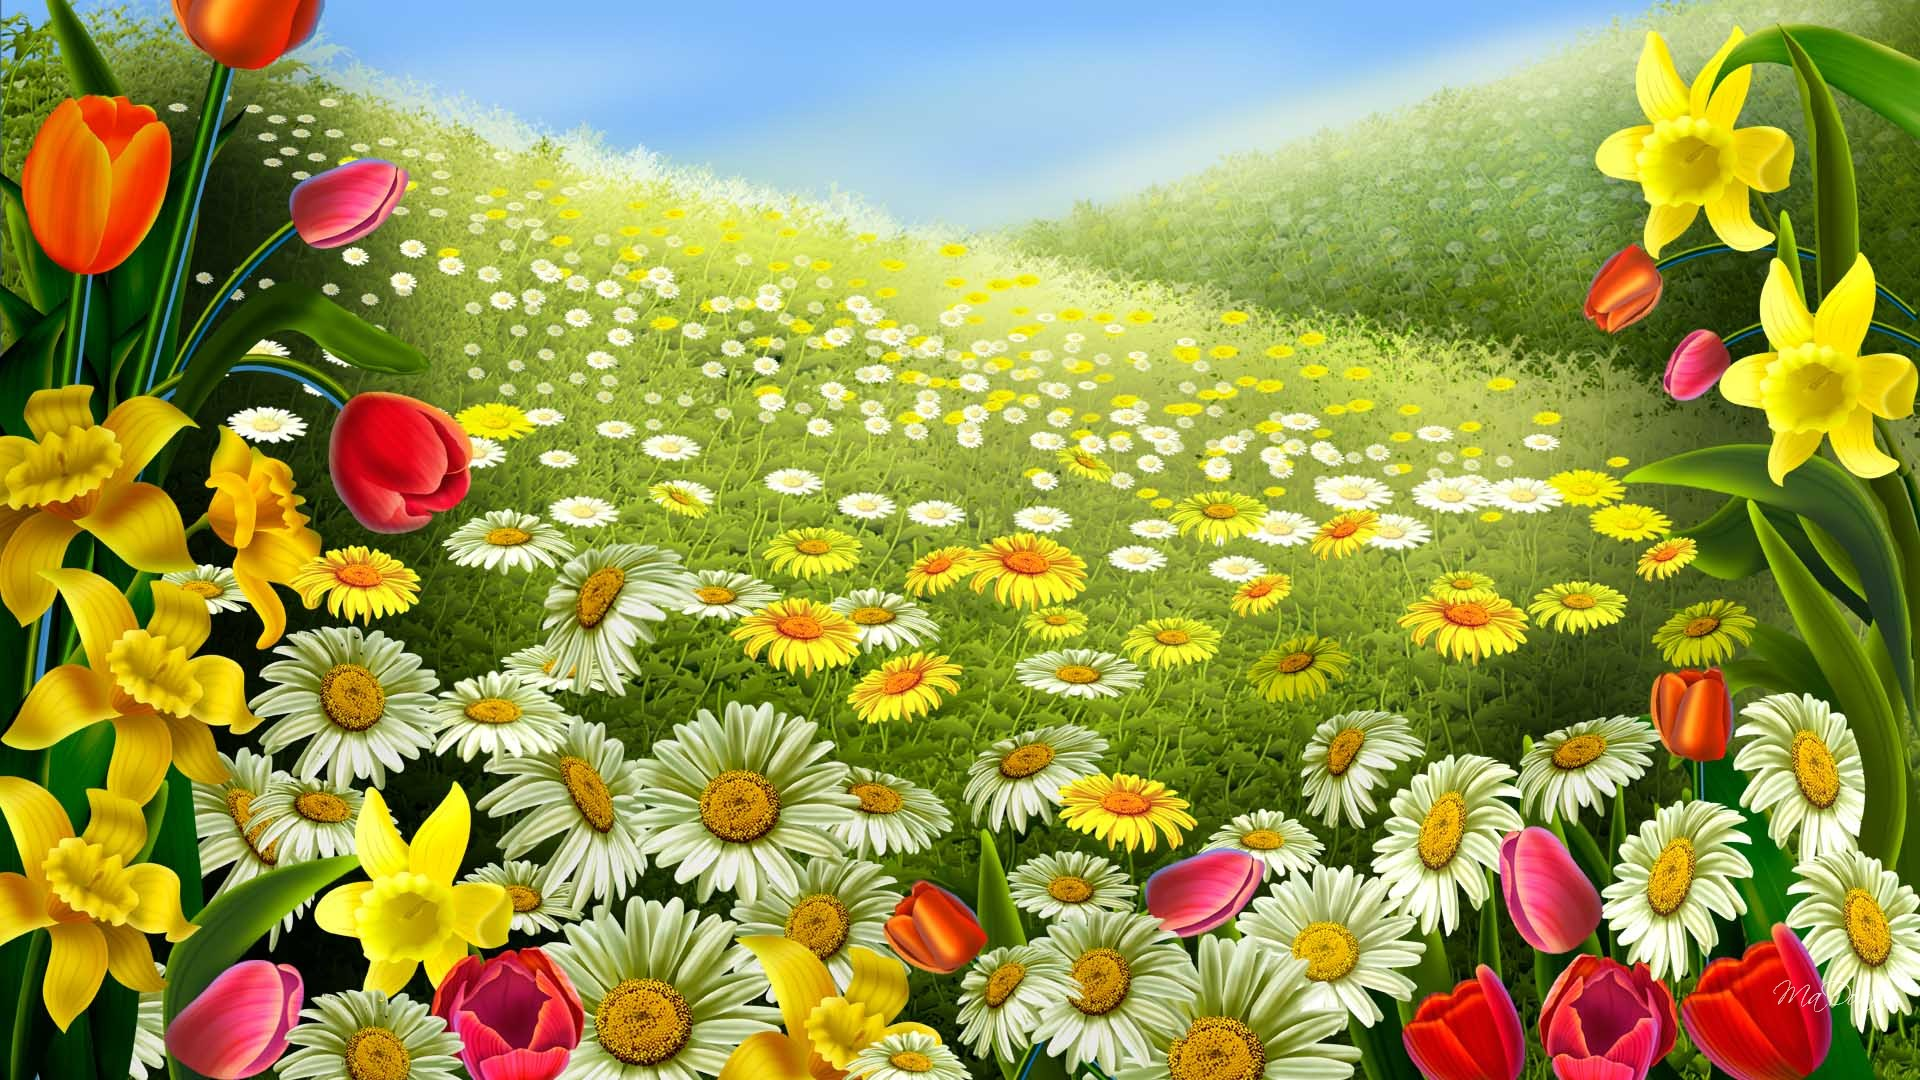 spring hd wallpapers For Desktop 1920x1080